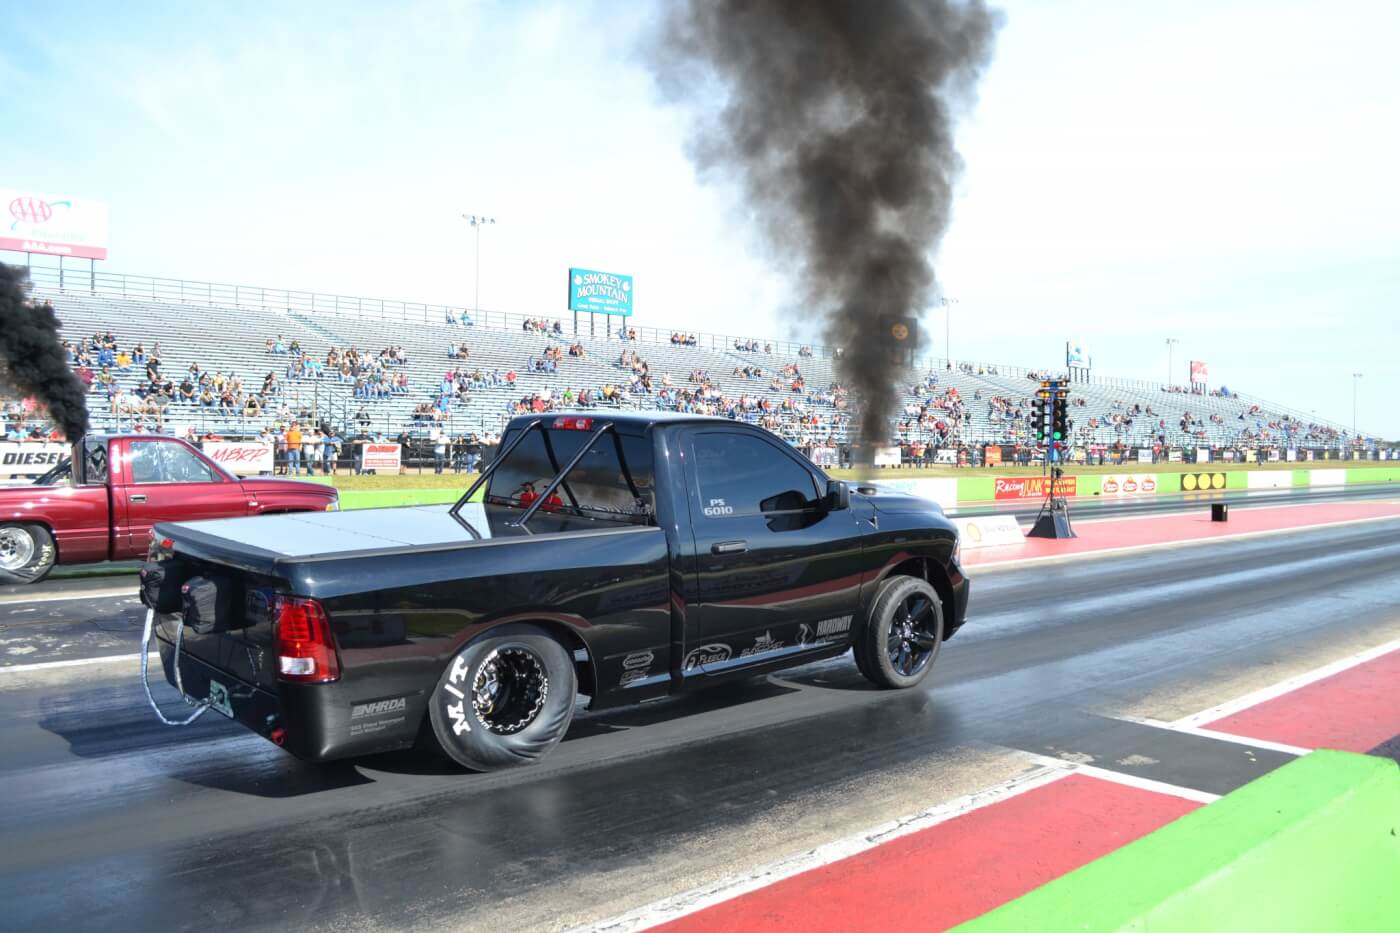 Probably the cleanest truck in attendance (racer or not), Ryan Milliken's Pro Street class Dodge went low 9's in the quarter before having transmission issues.